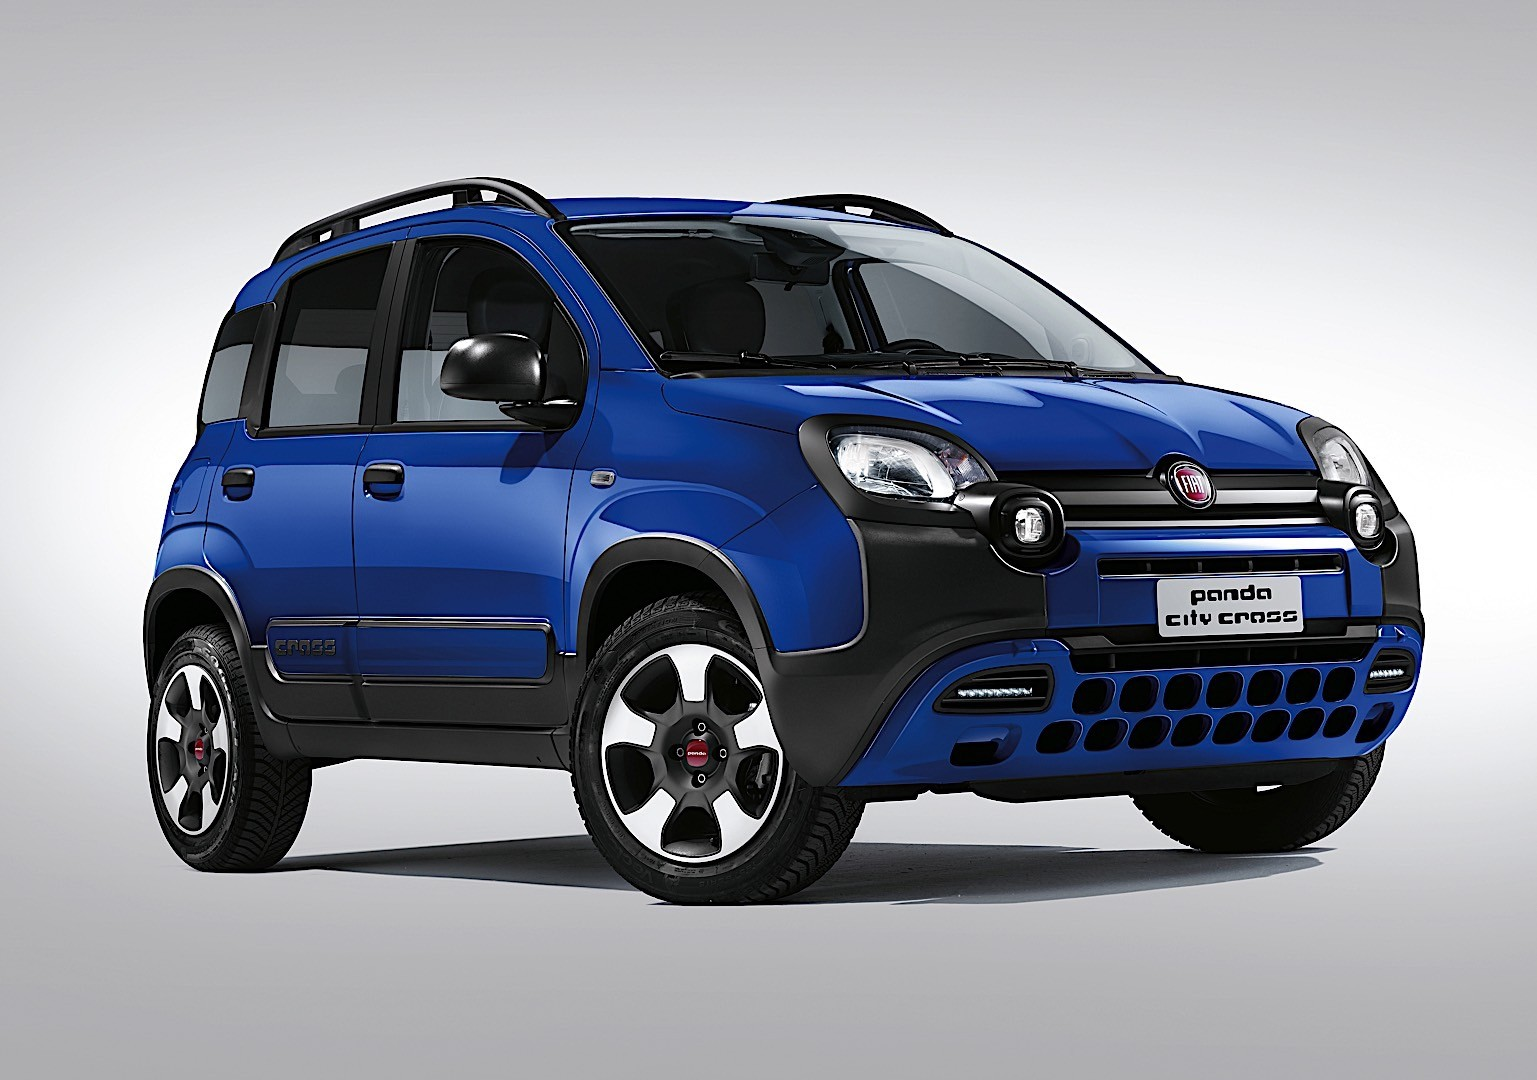 fiat panda city cross specs photos 2017 2018 2019 autoevolution. Black Bedroom Furniture Sets. Home Design Ideas